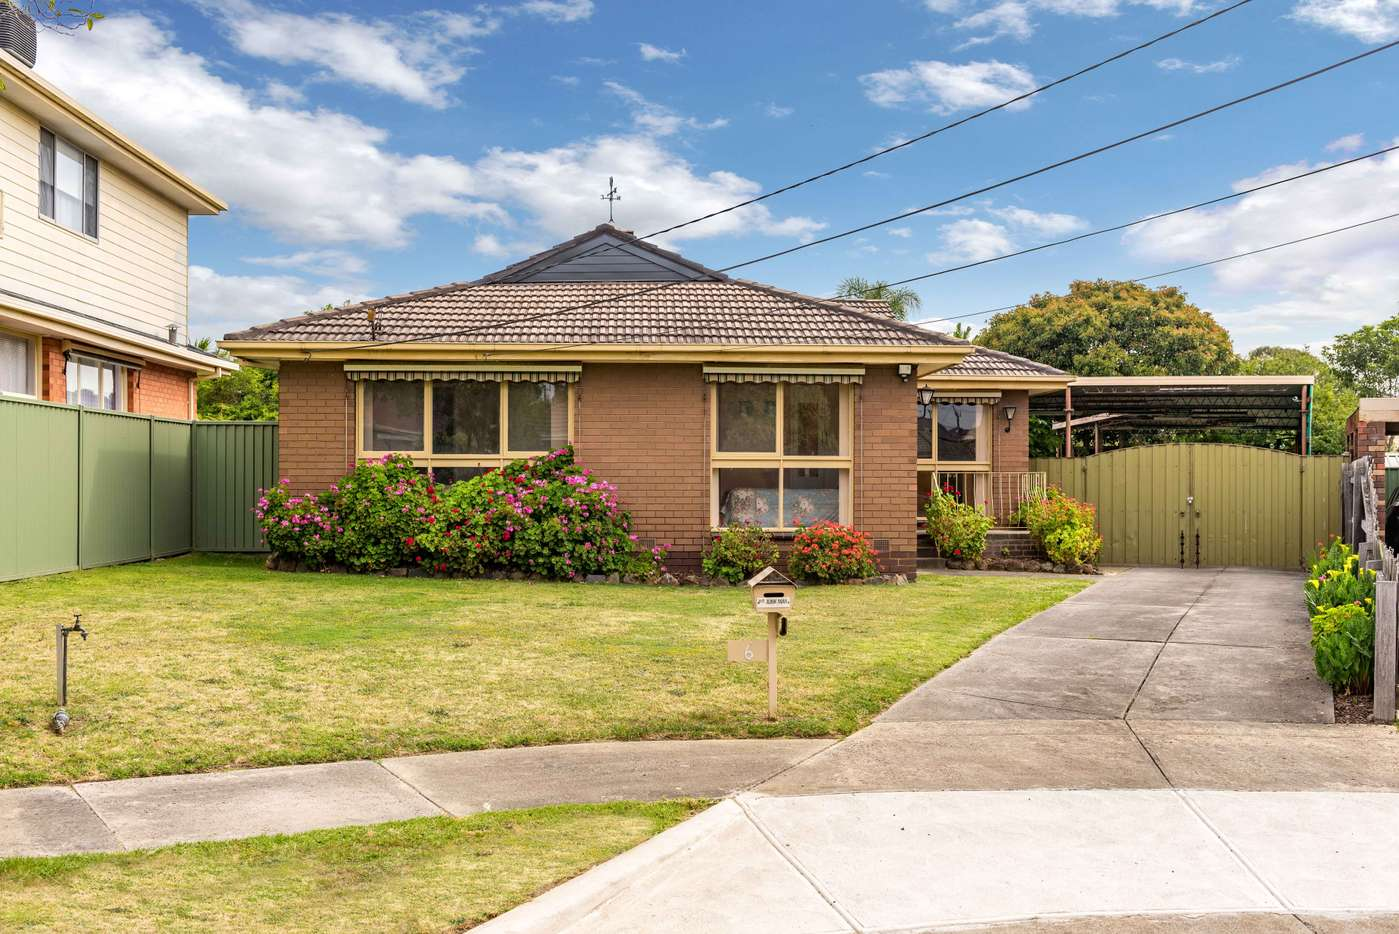 Main view of Homely house listing, 6 Gyra Court, Bundoora, VIC 3083